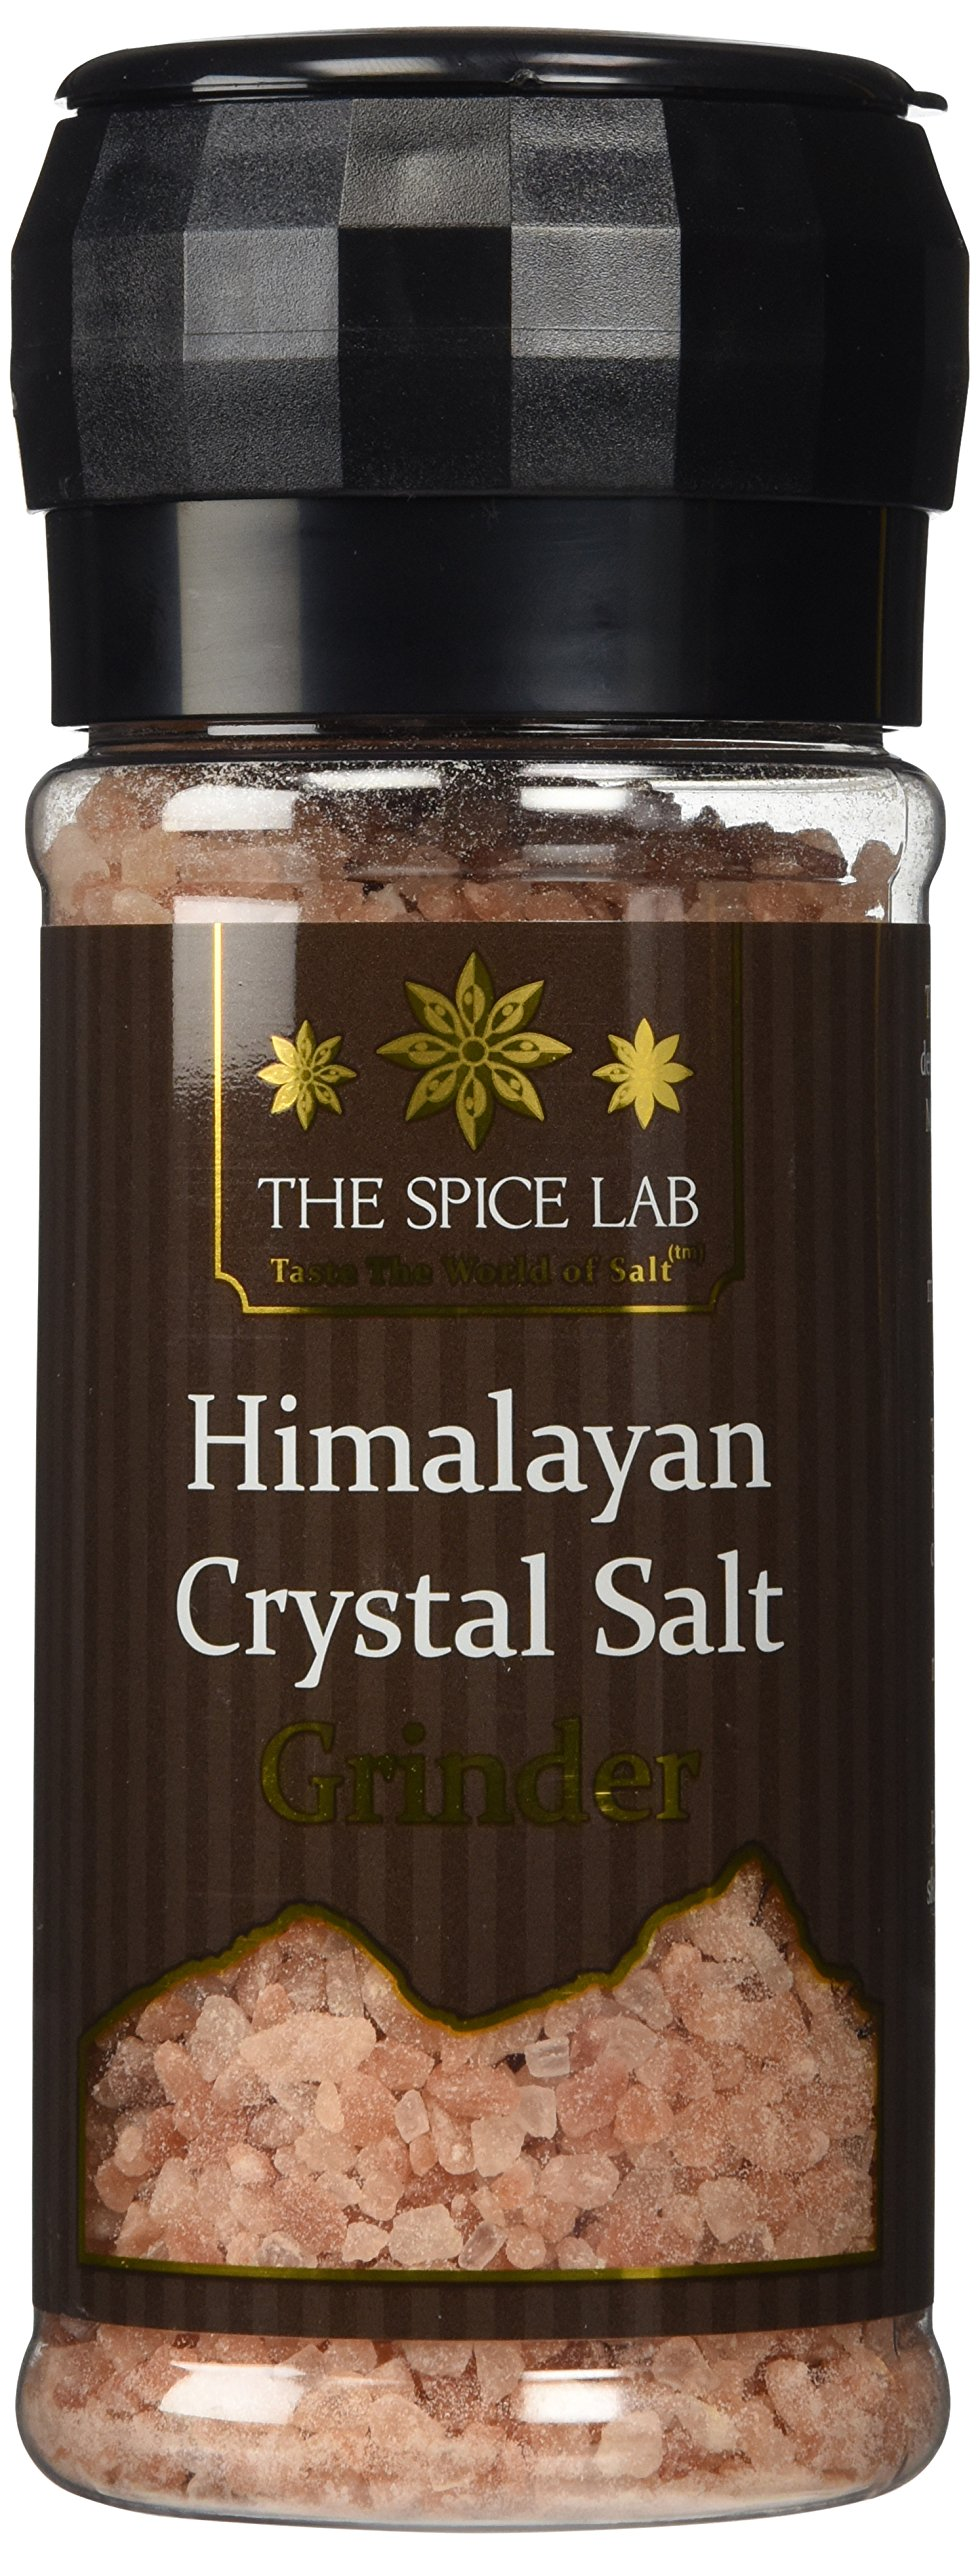 The Spice Lab Pink Himalayan Salt - 1lb. Salt Grinder - Coarse Gourmet Pure Crystal - Nutrient and Mineral Fortified for Health - Kosher and Natural Certified